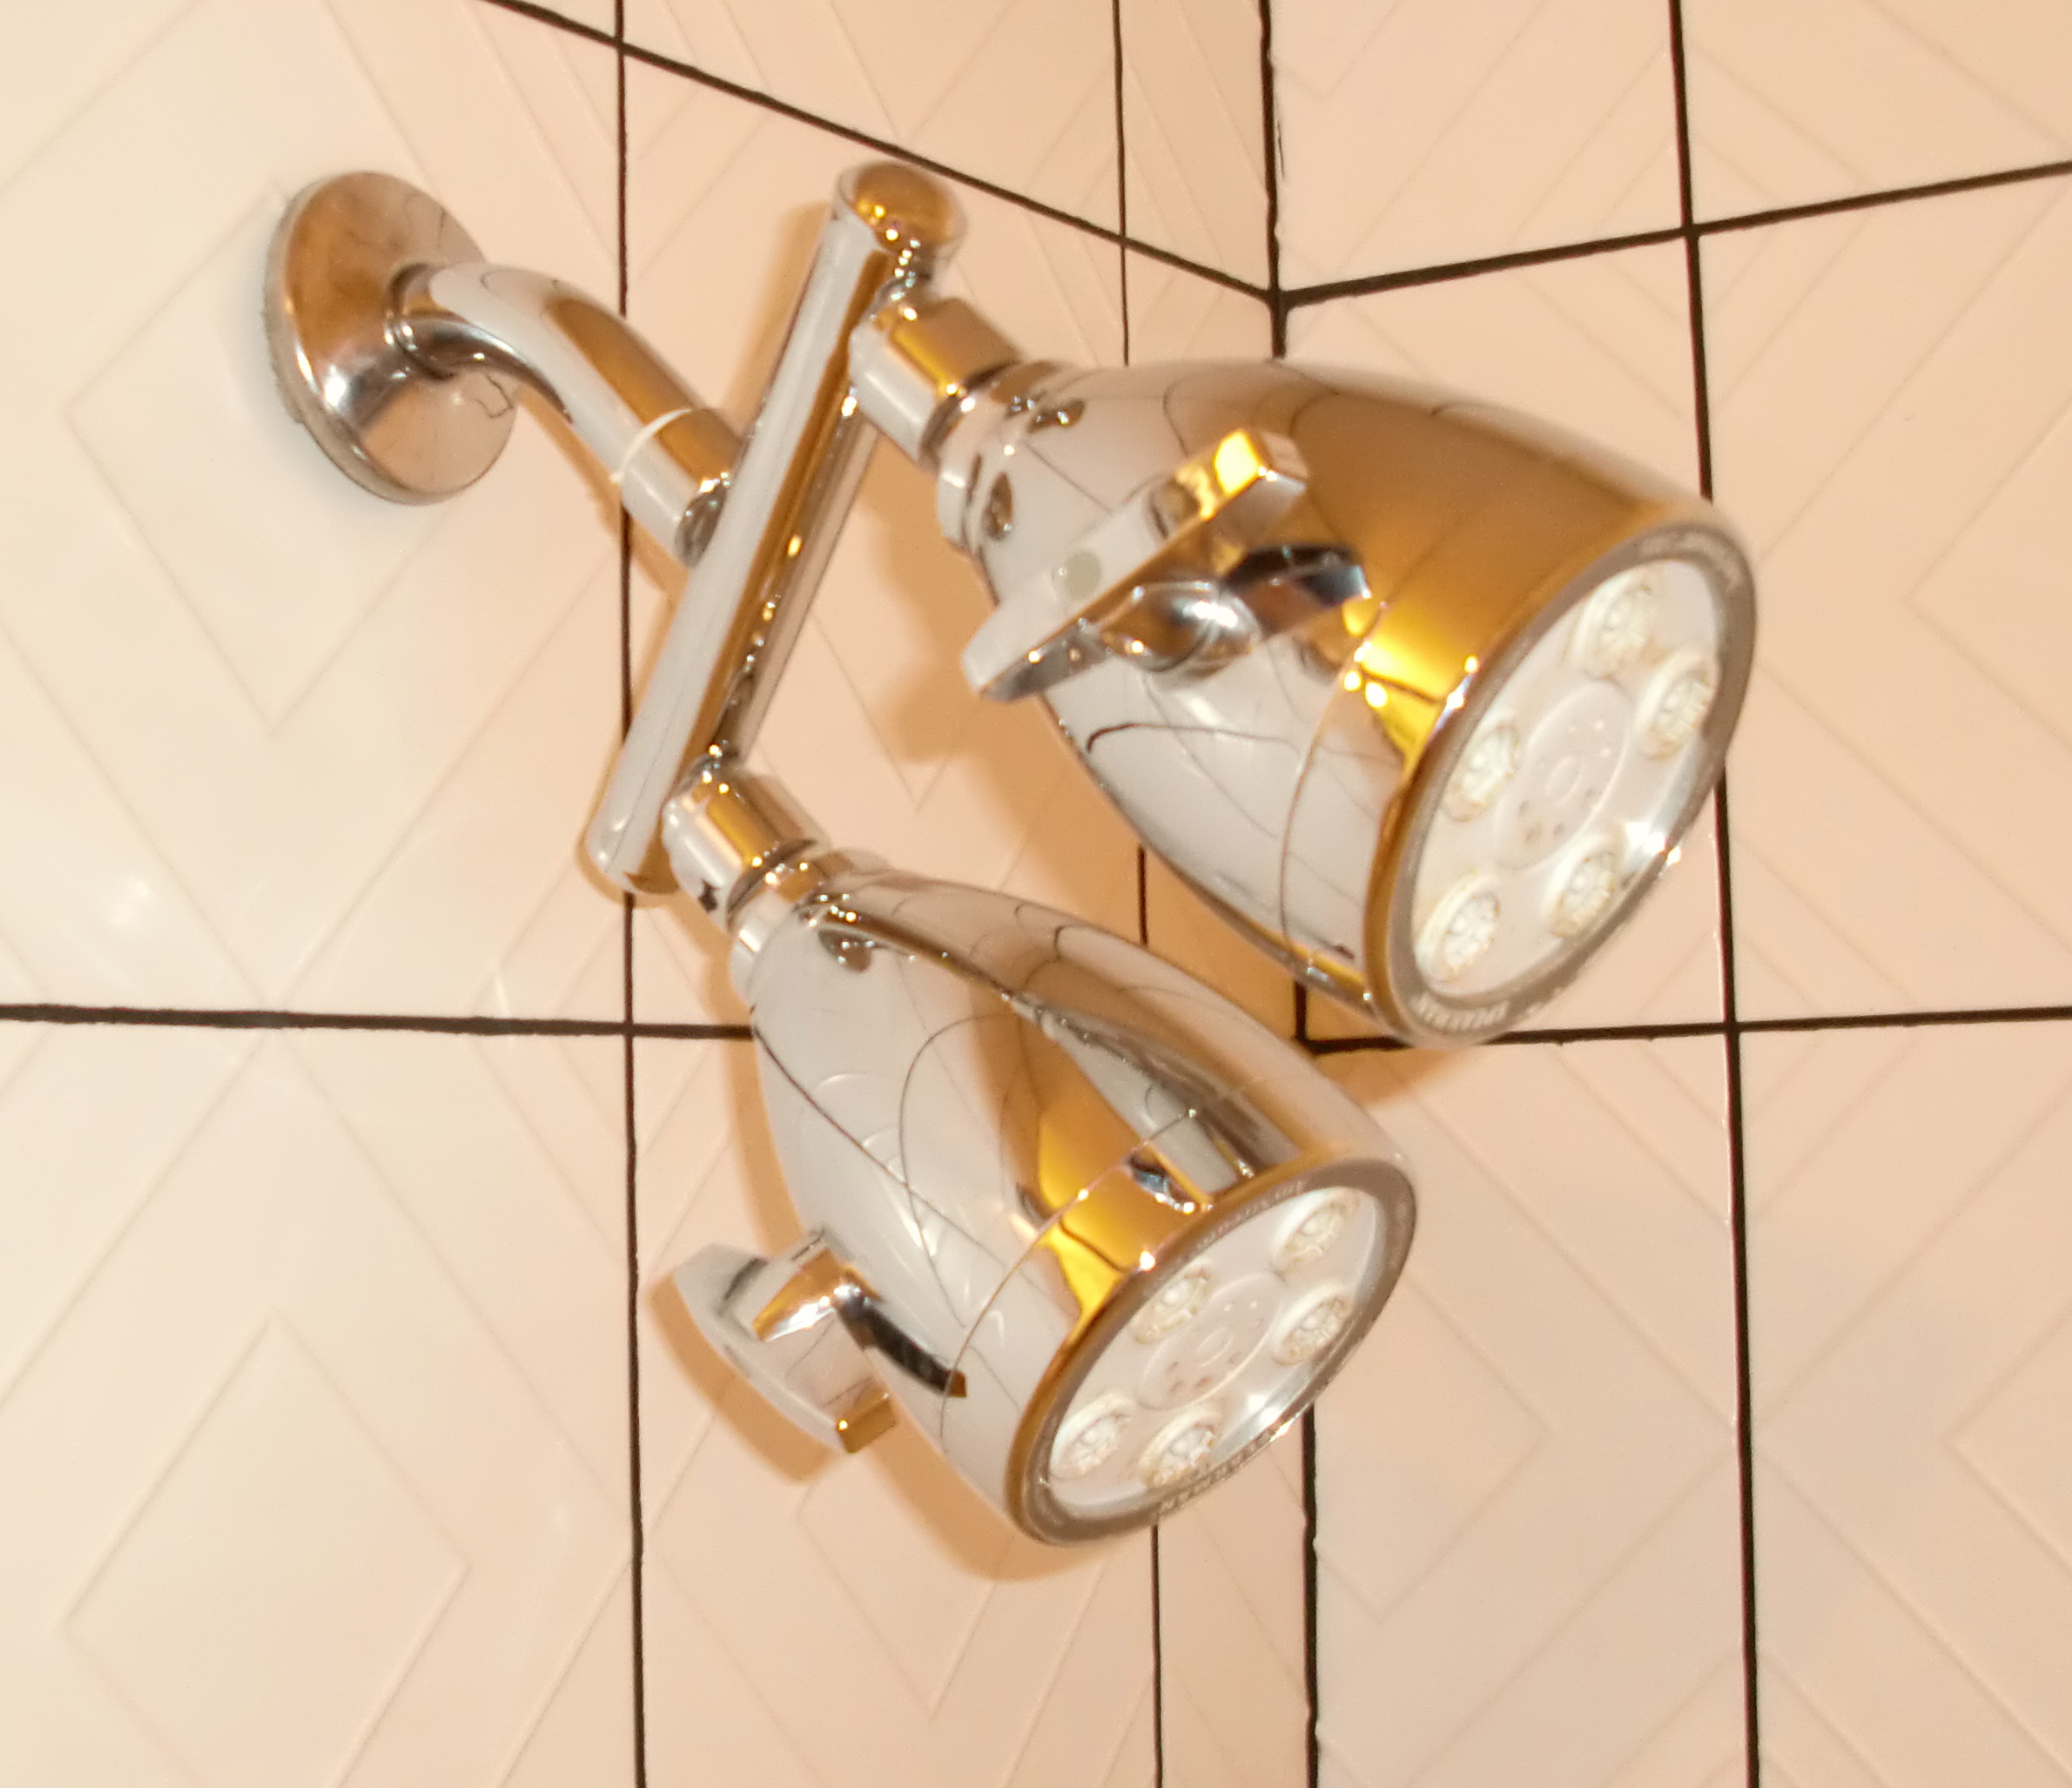 Cool Shower Head Indeed (but Better Looking Than Working)